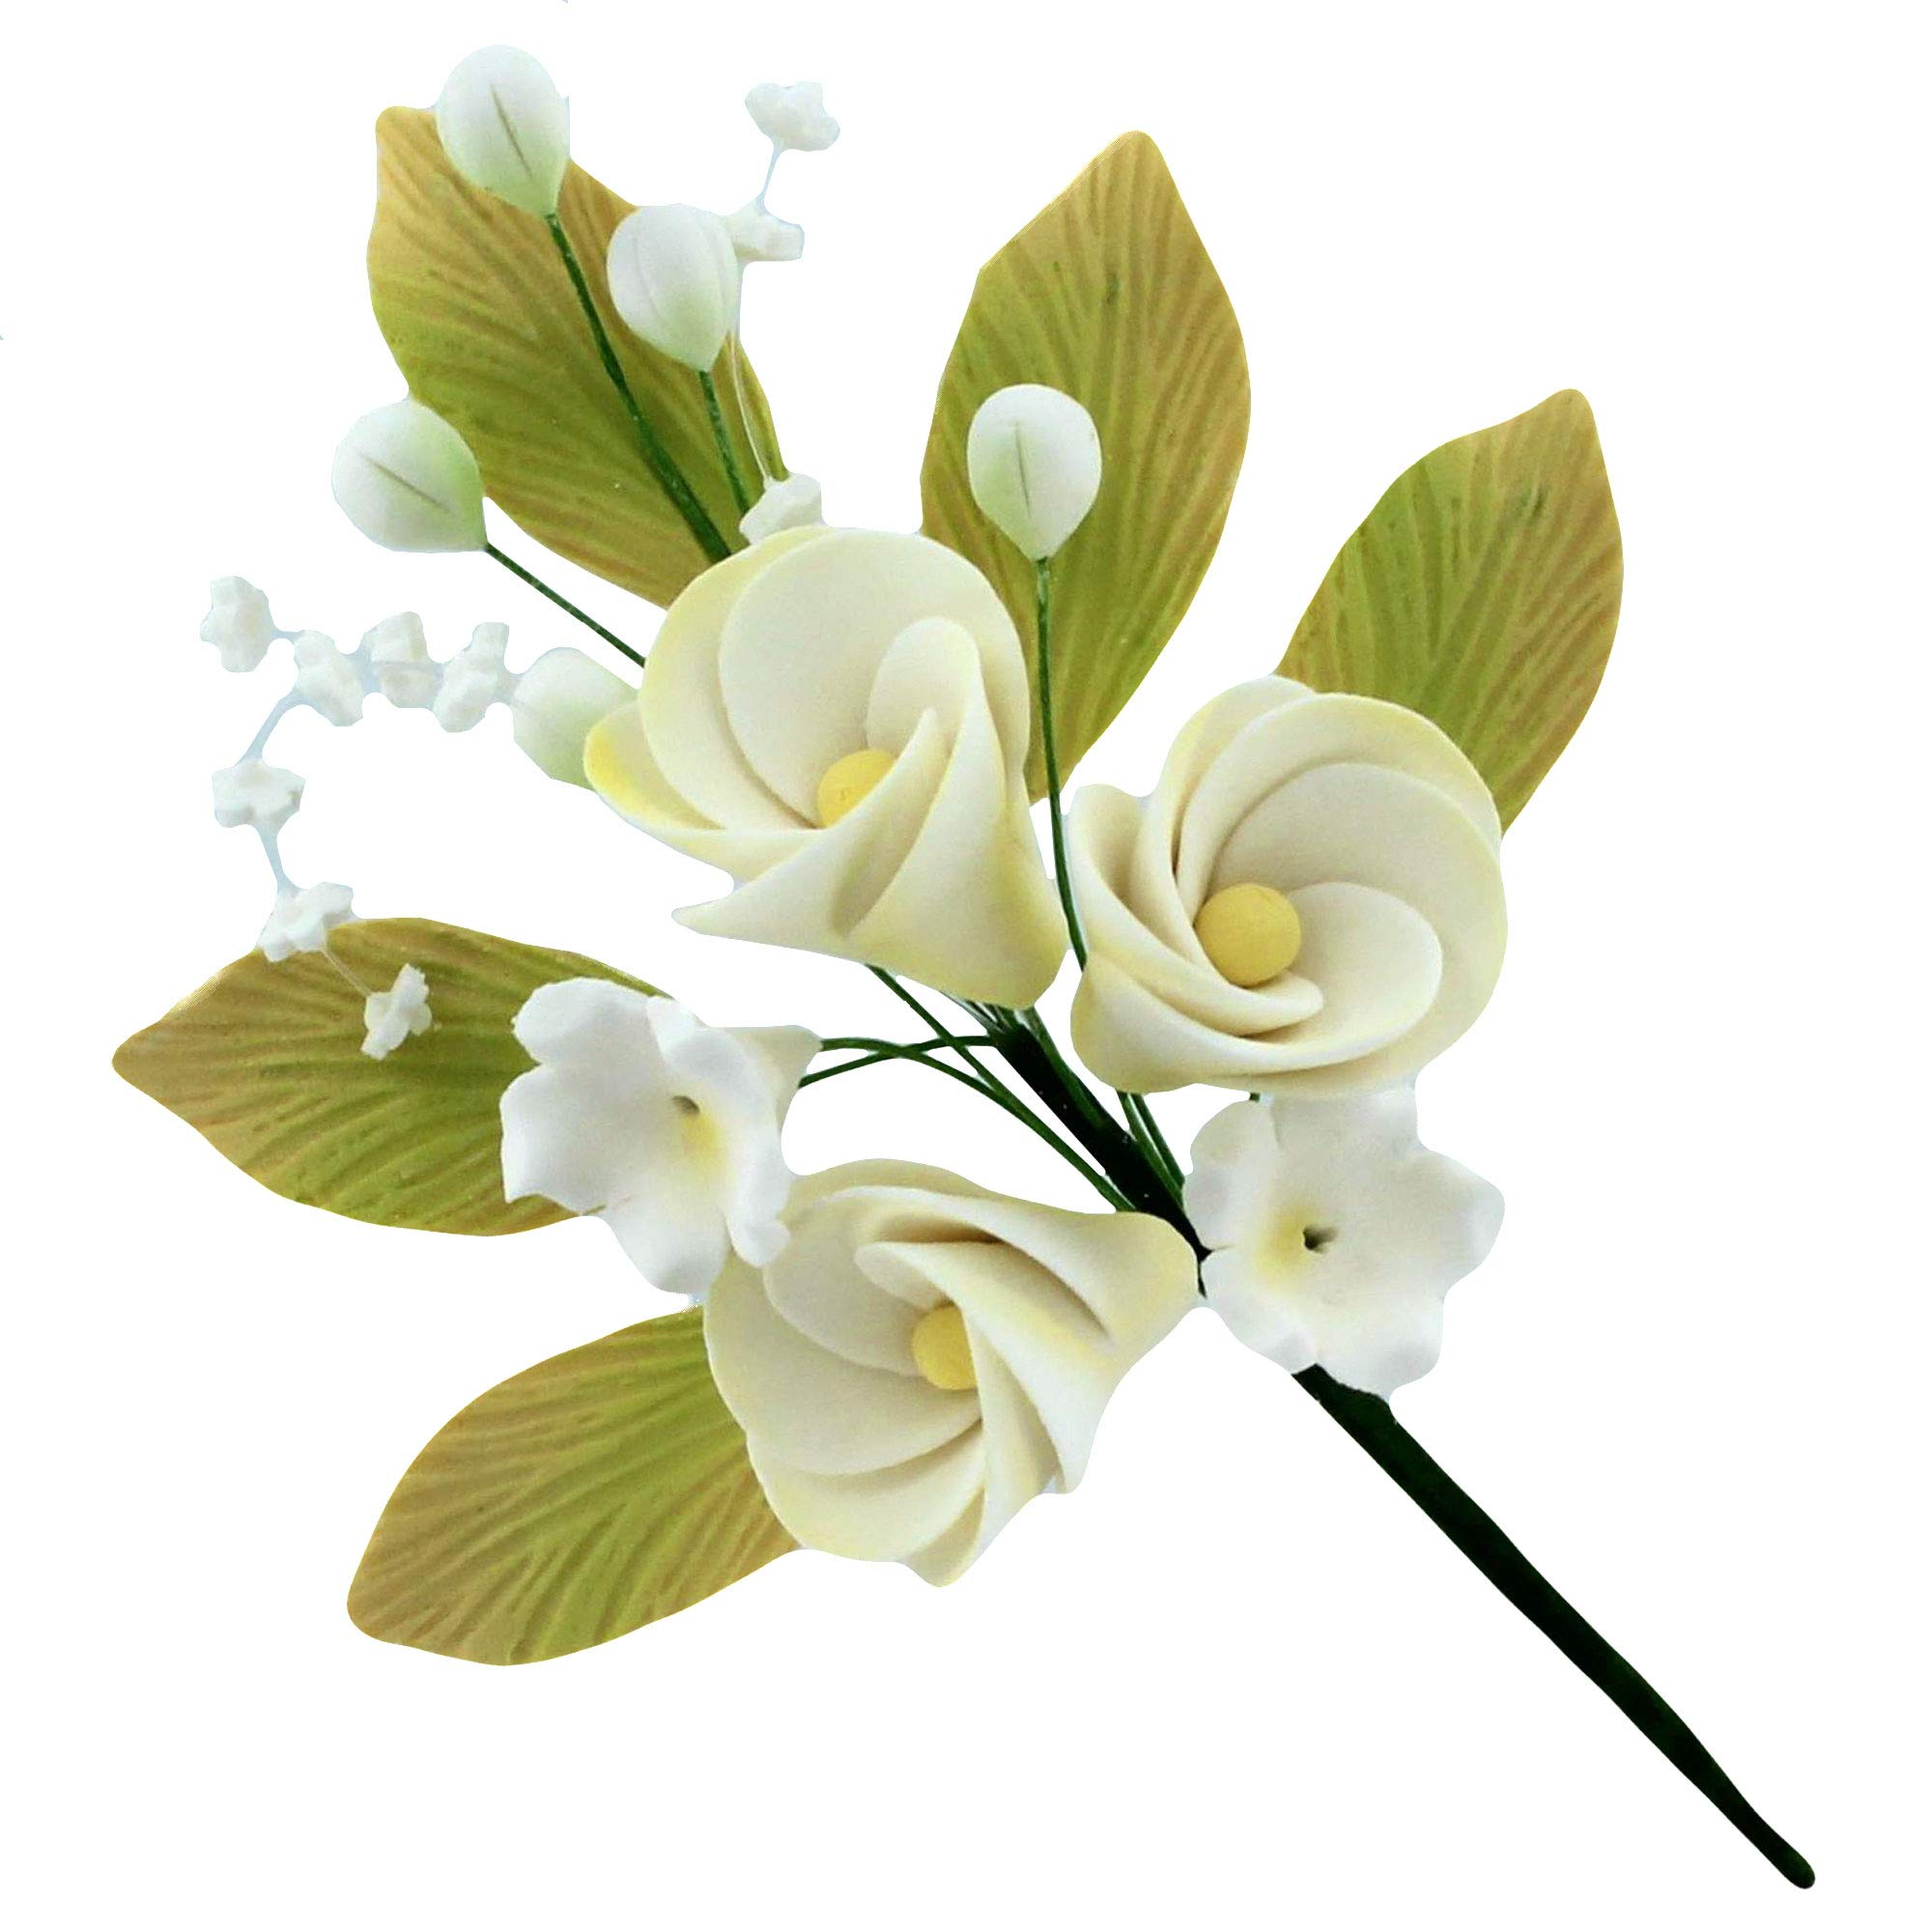 Global Sugar Art Frangipani Spray Sugar Flowers, White with Yellow, 18 Count by Chef Alan Tetreault